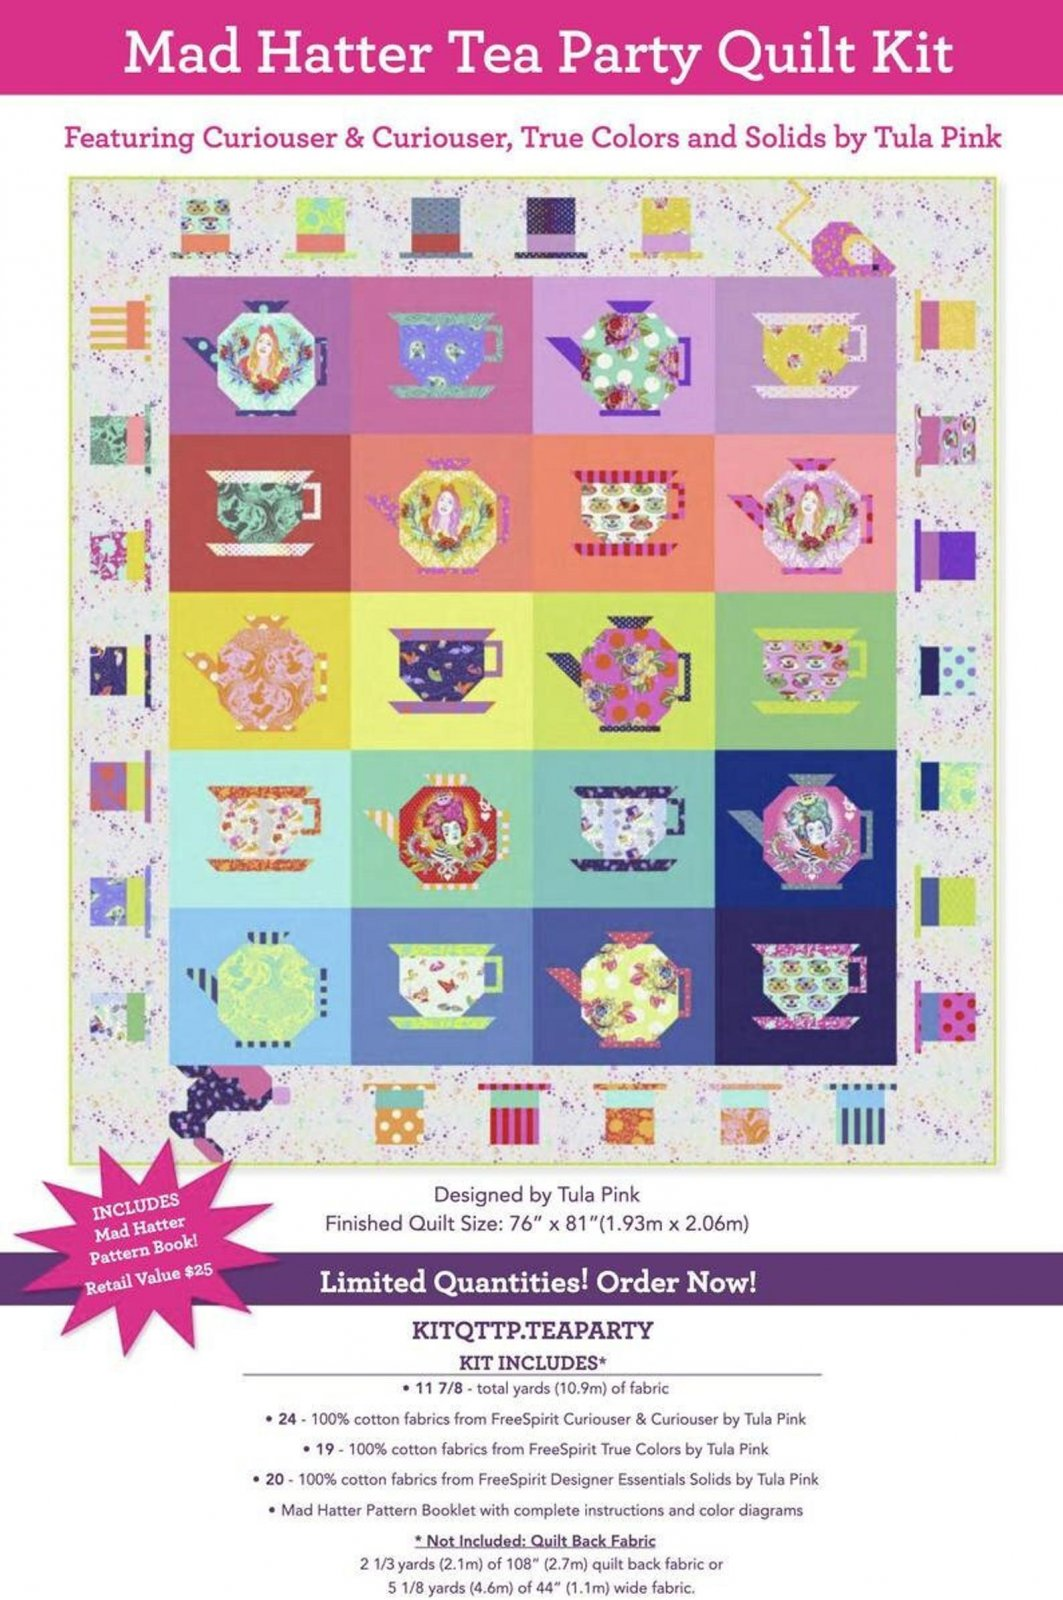 Mad Hatter Tea Party Quilt Kit (featuring Tula Pink Curiouser & Curiouser, True Colors, and Solids)